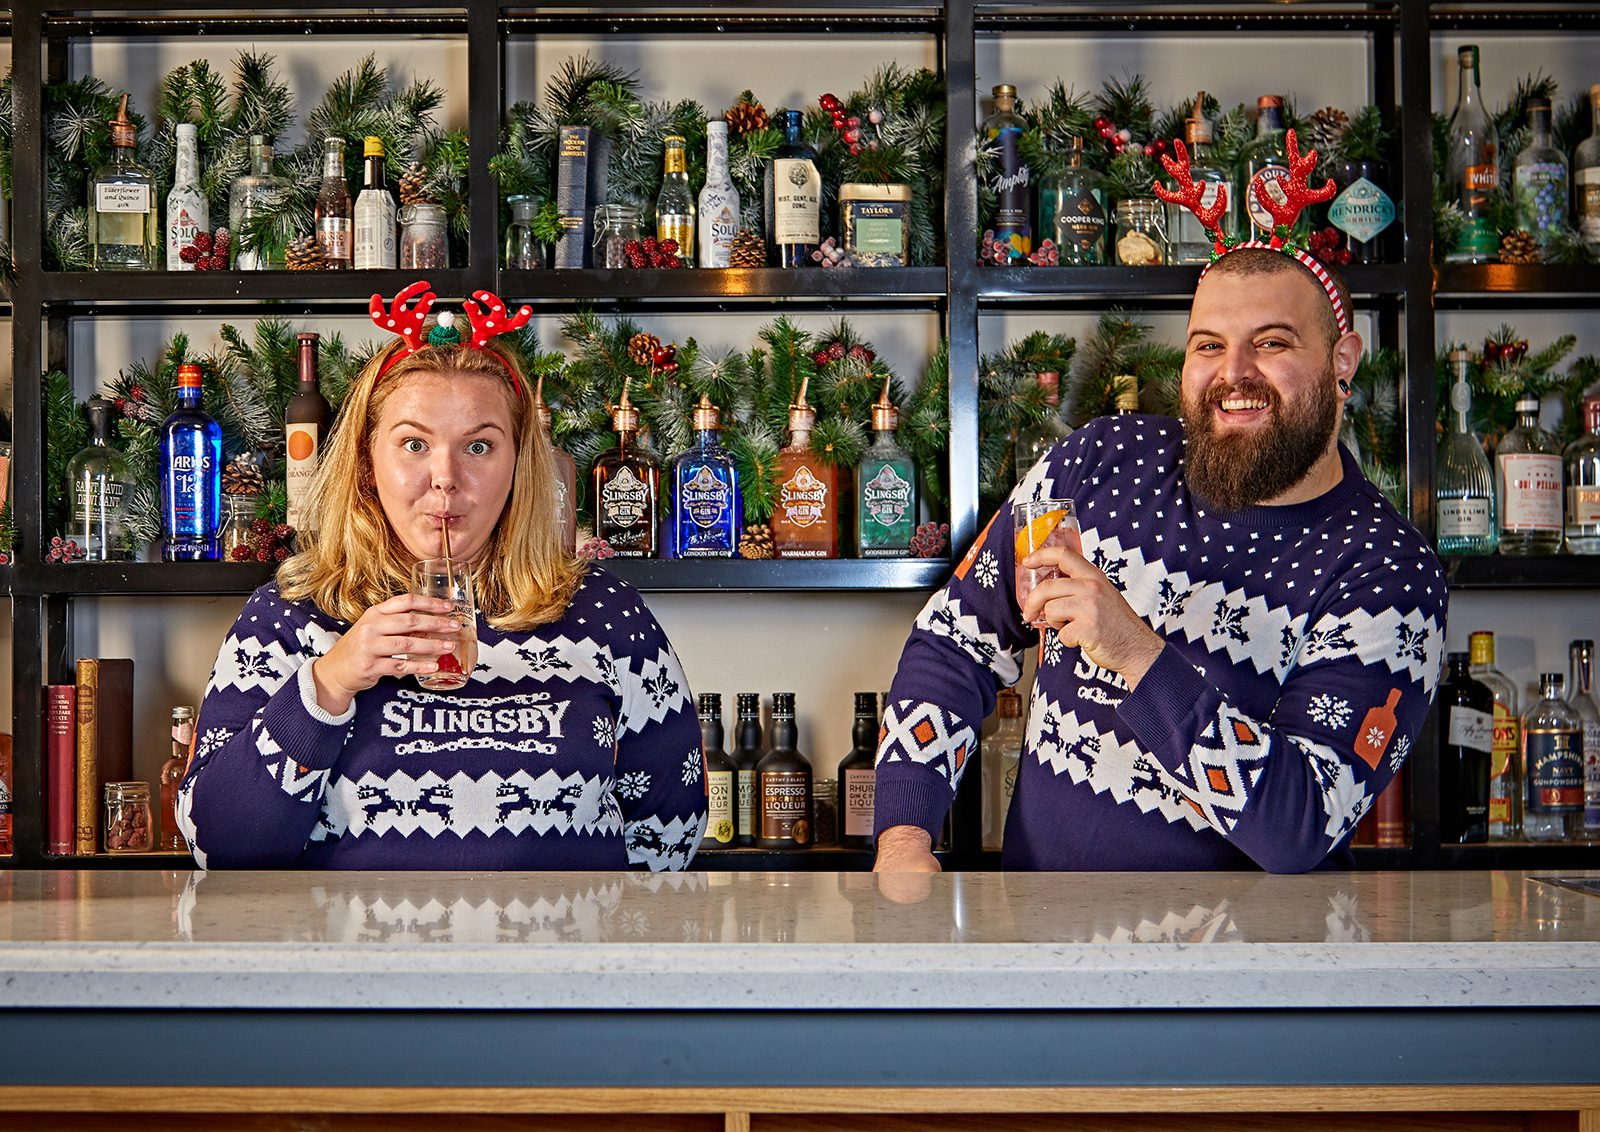 Slingsby Gin mixologists relax in Christmas jumpers with a gin and tonic